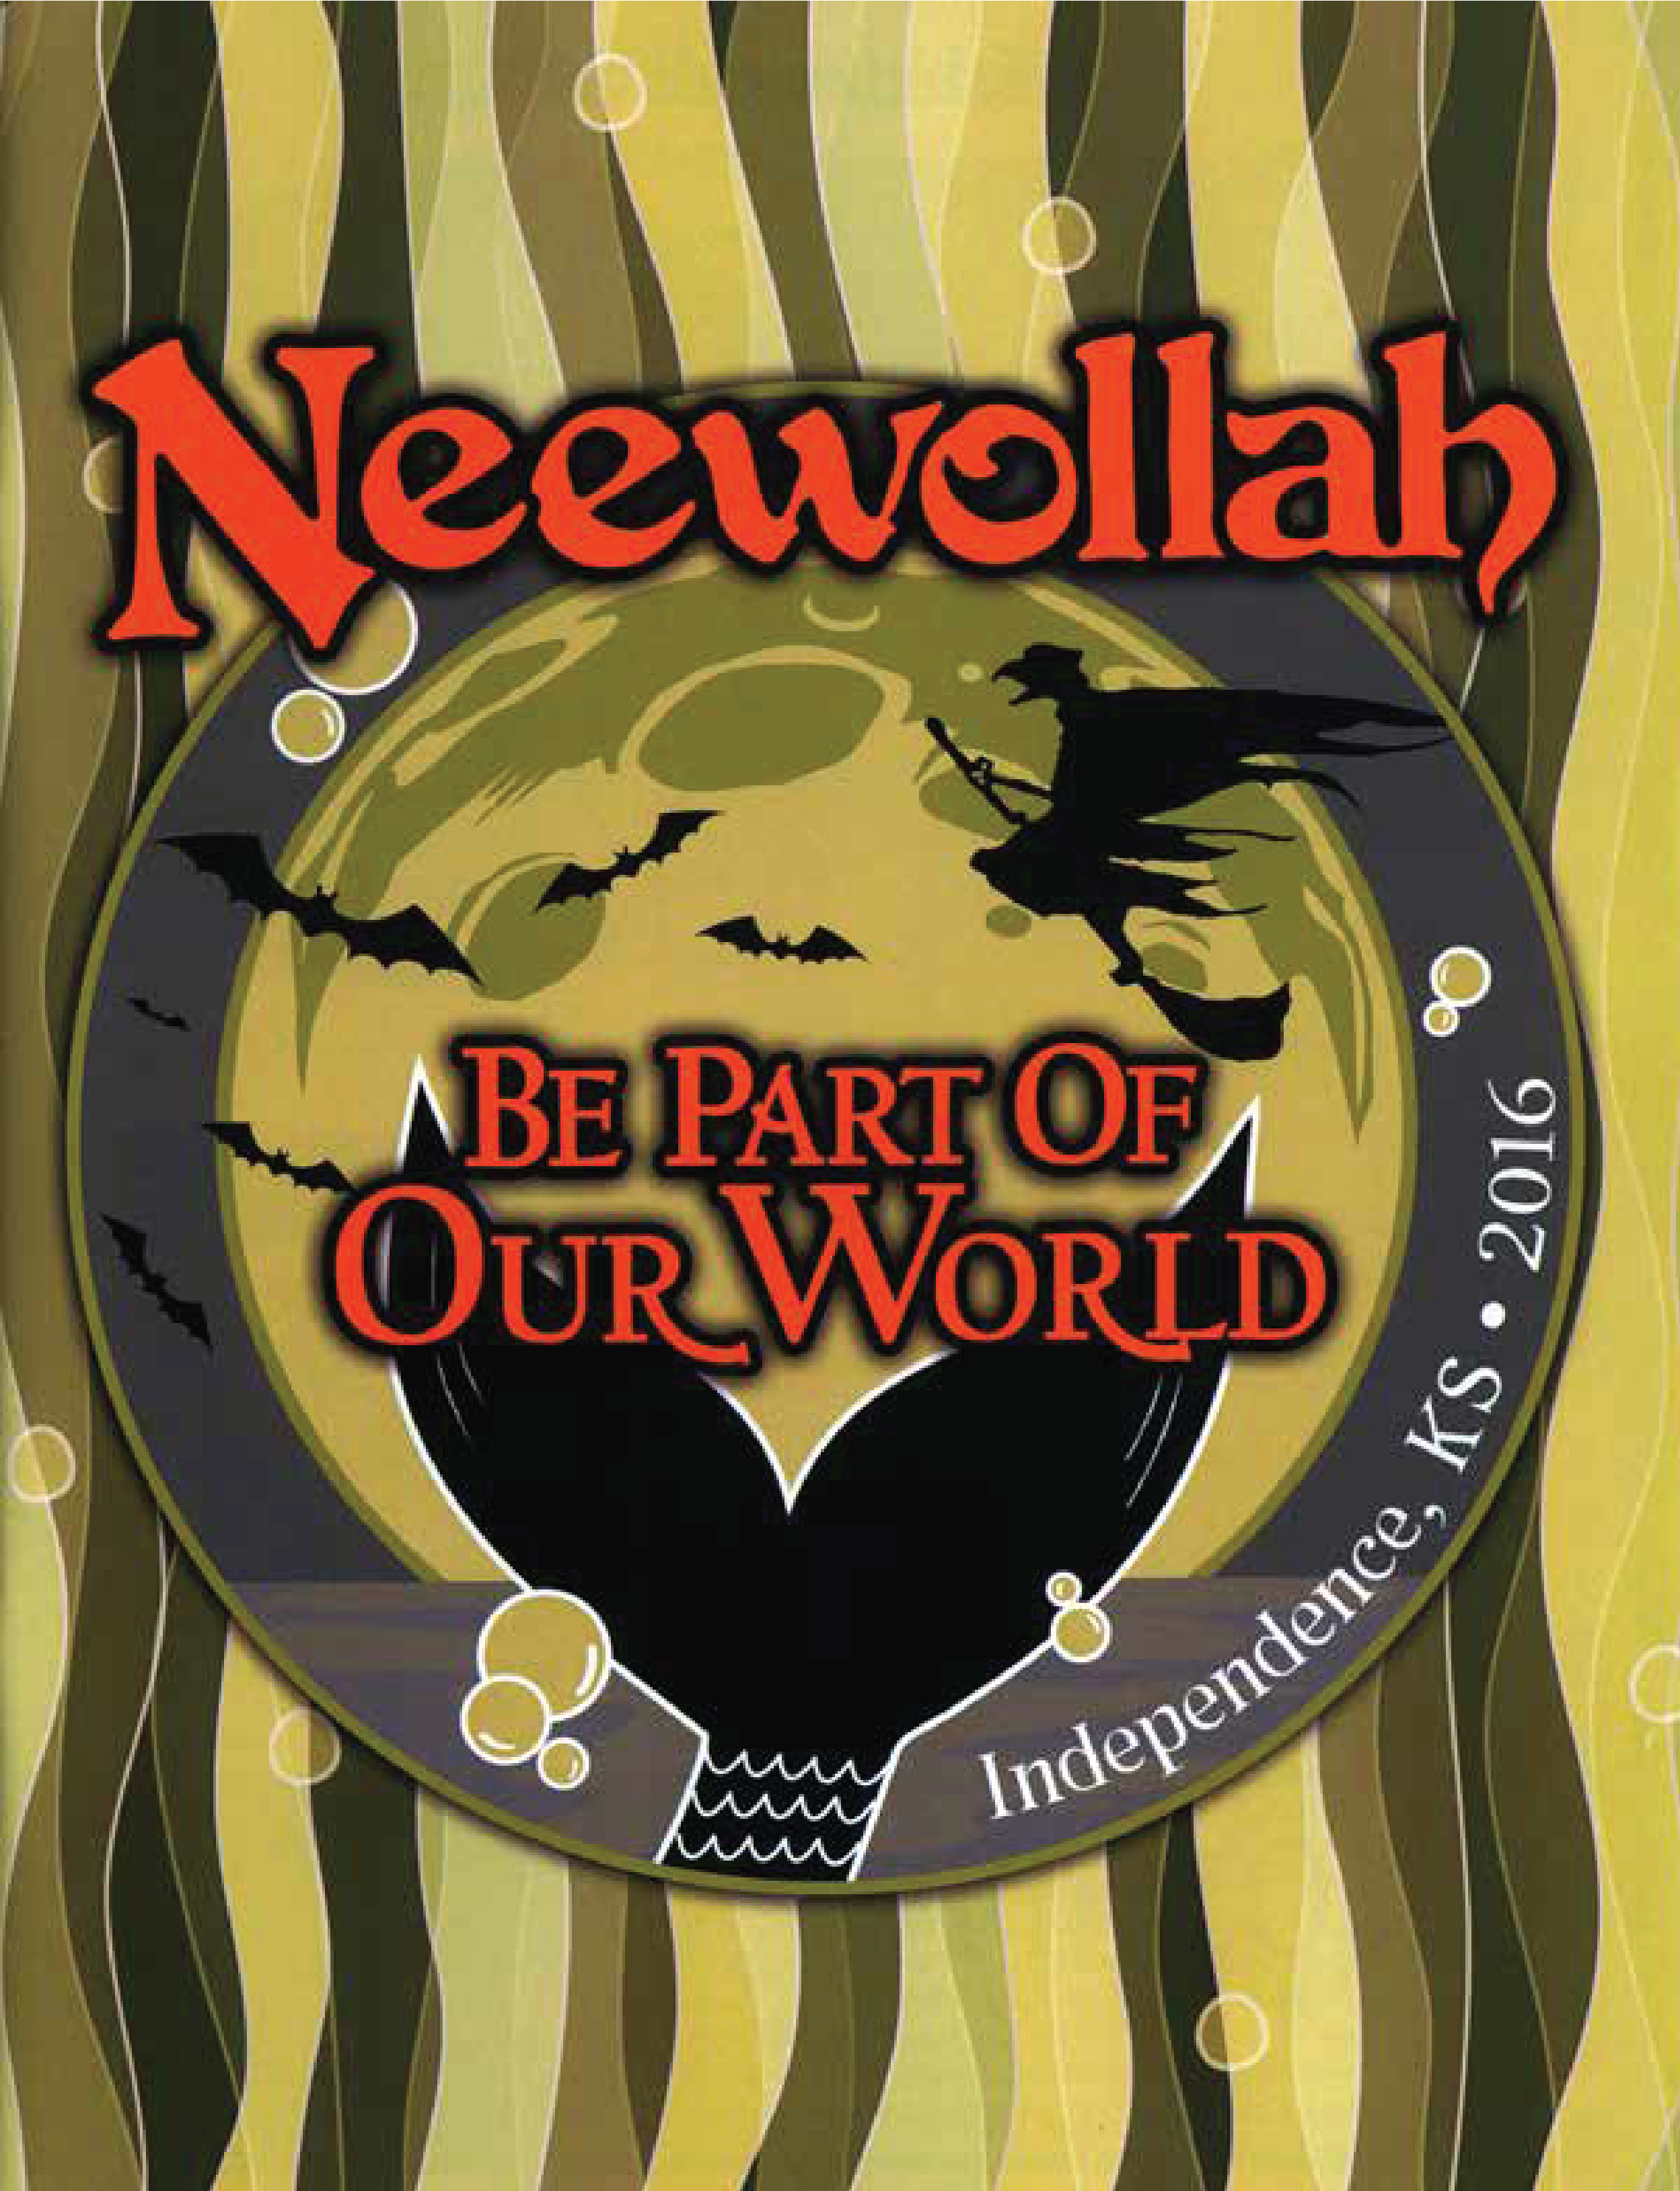 Neewollah 2016 Be Part of Our World